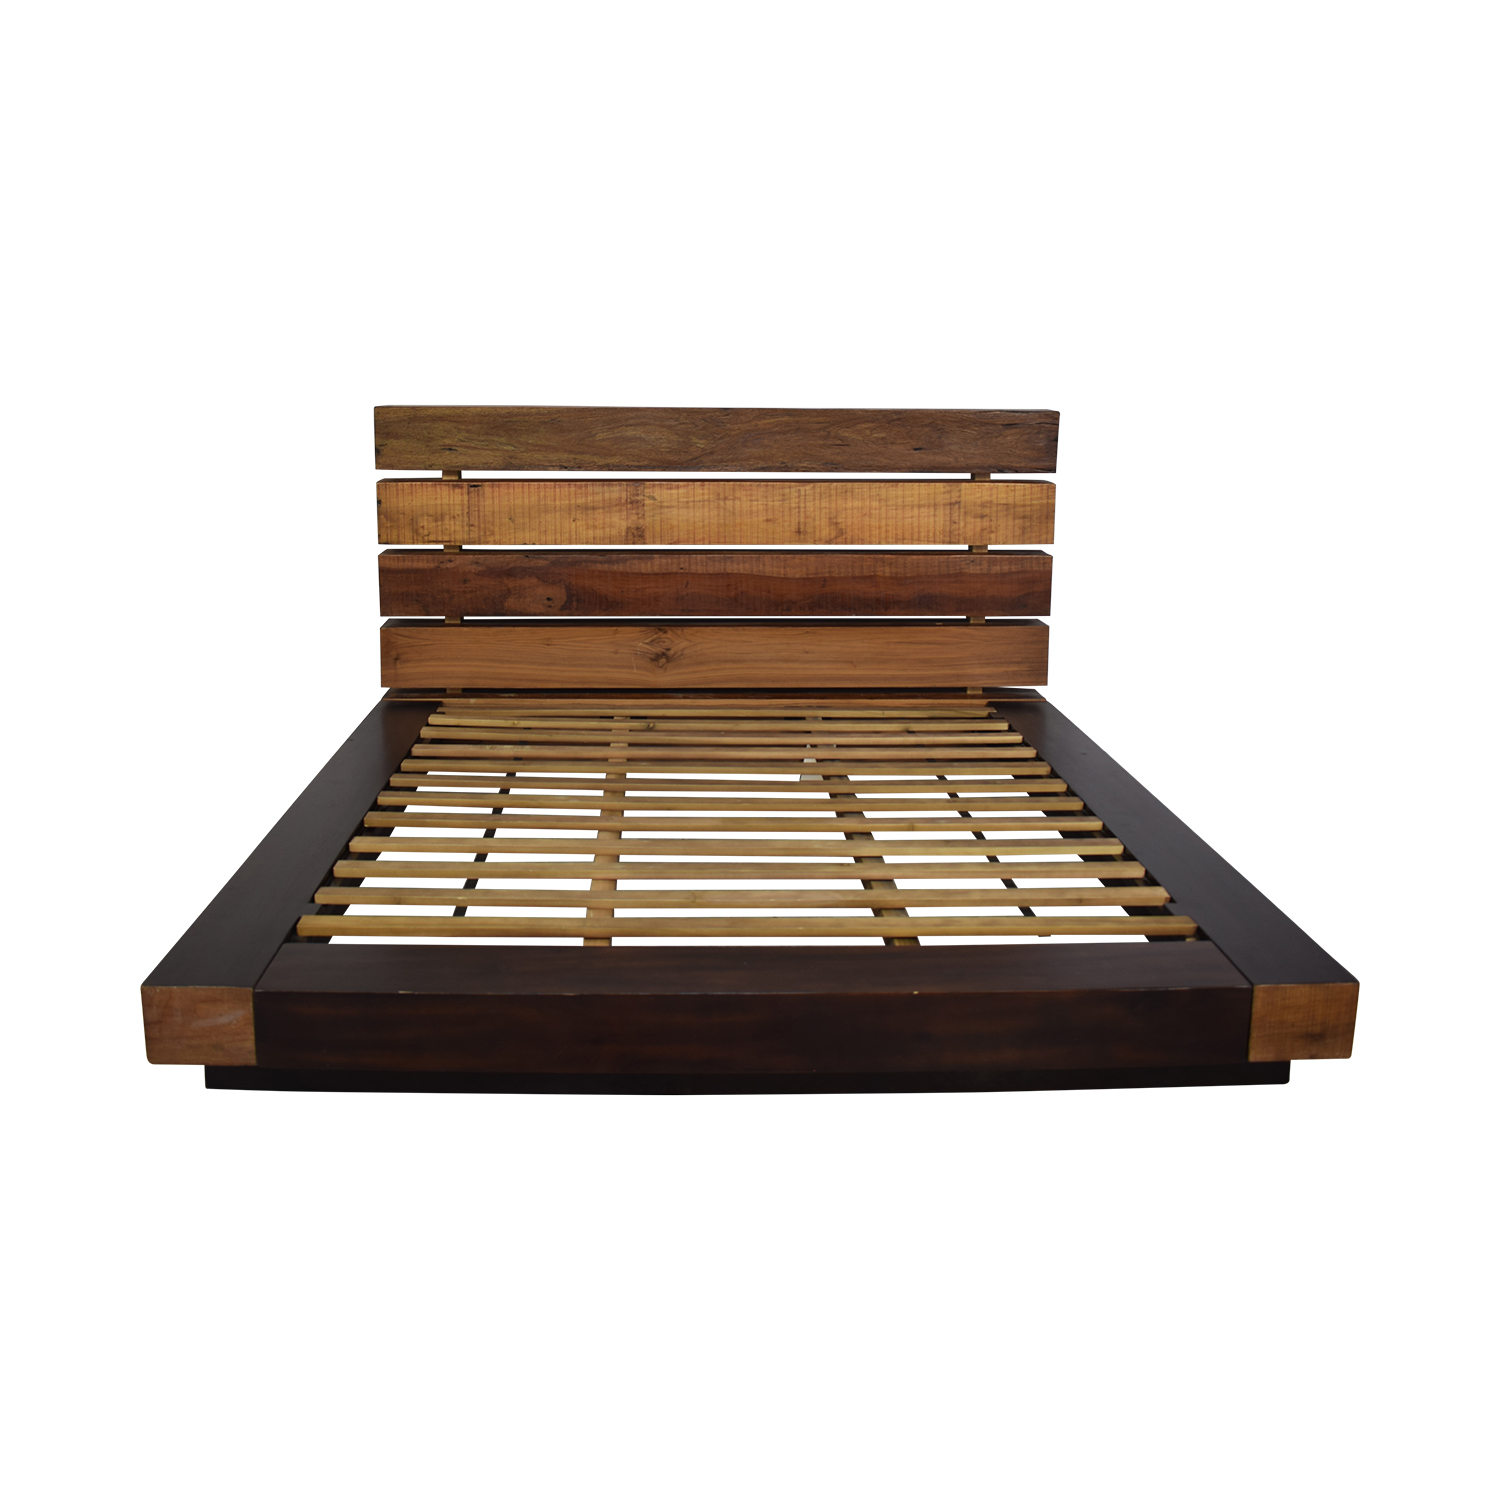 ABC Carpet & Home ABC Carpet &  Home King Size Edge Rustic Slat Bed nj